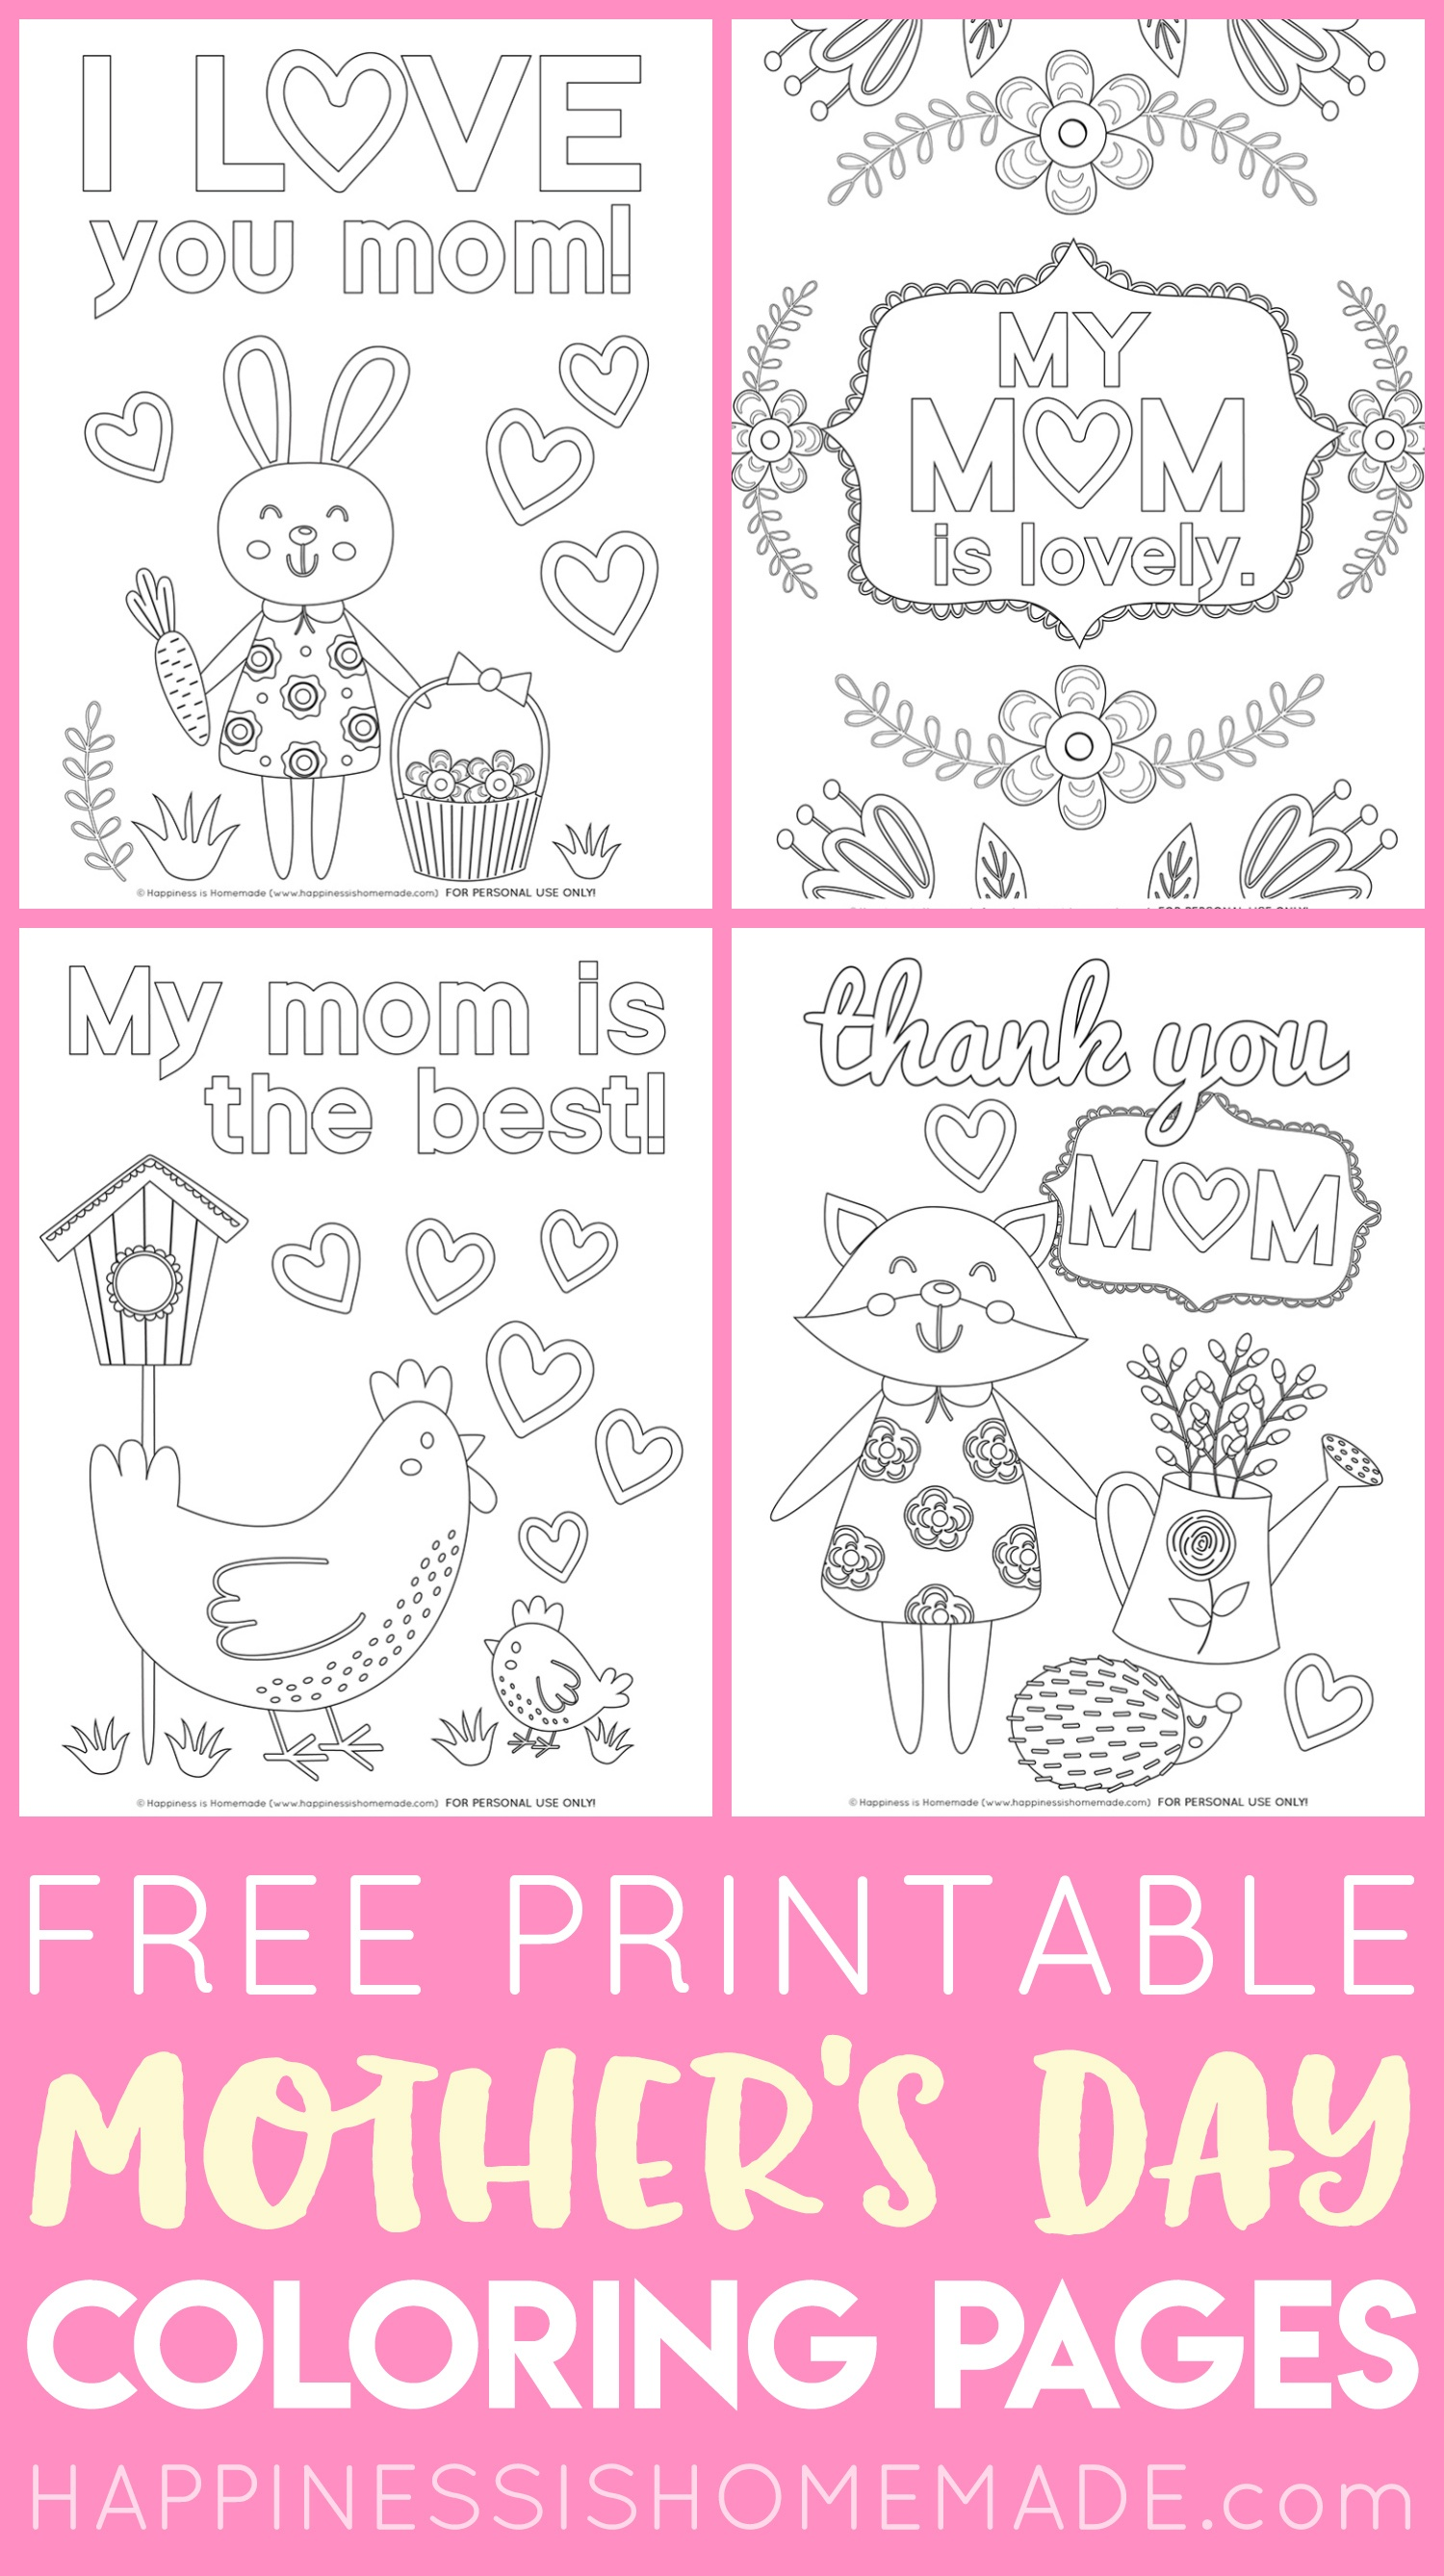 Easy Mother's Day Crafts For Kids - Happiness Is Homemade - Free Printable Mothers Day Crafts